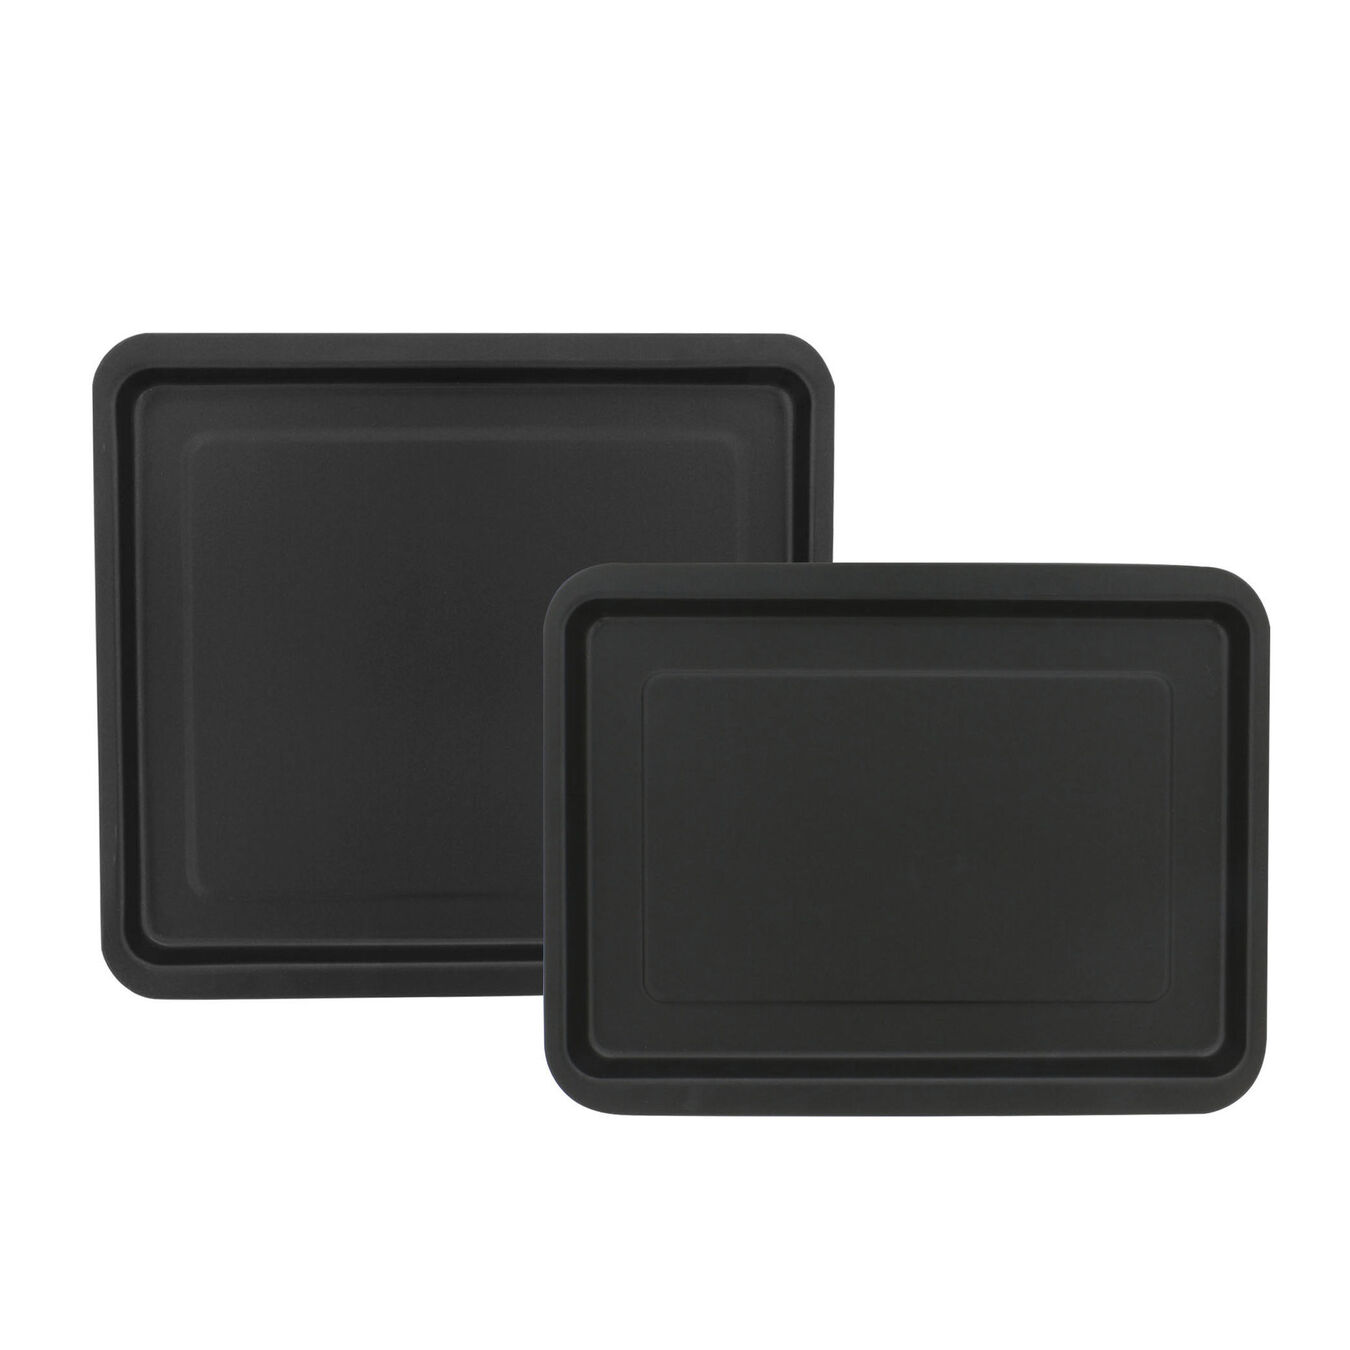 2-pc Jelly Roll Pan Set,,large 1